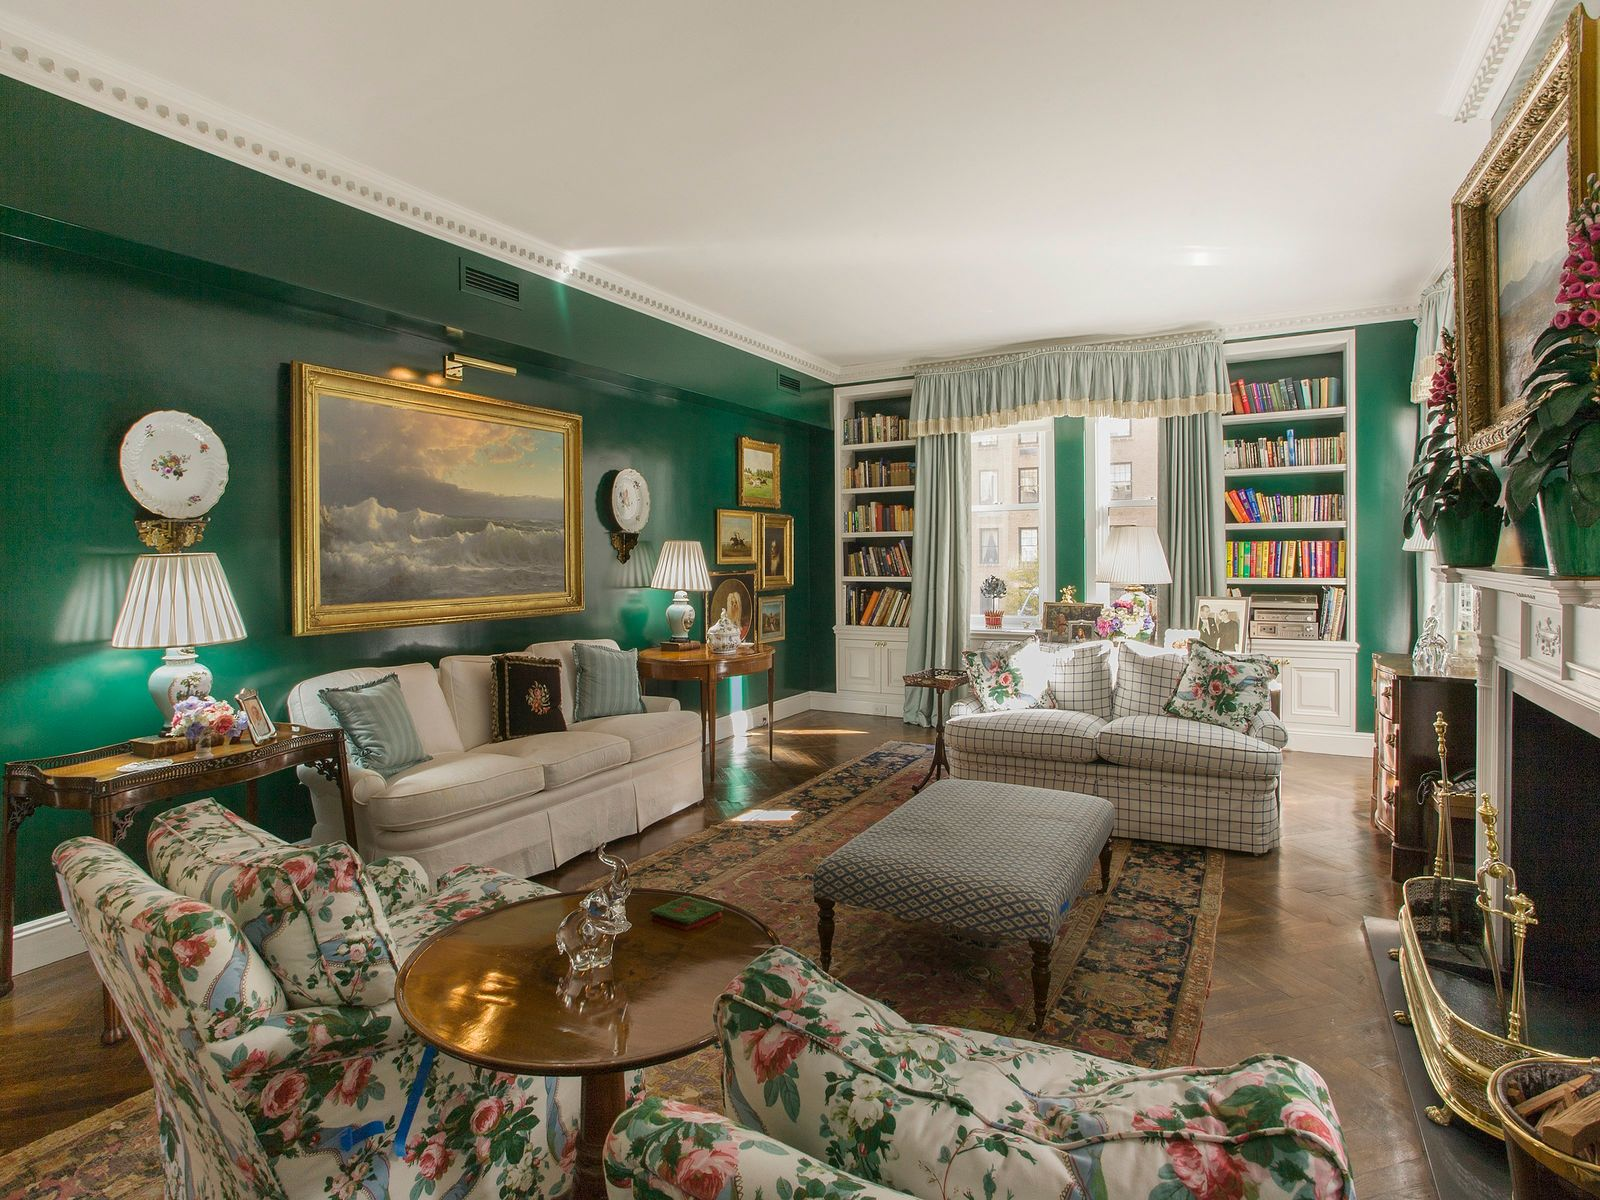 Unique 3-Bedroom Pre-War on Park Avenue, New York NY Cooperative - New York City Real Estate